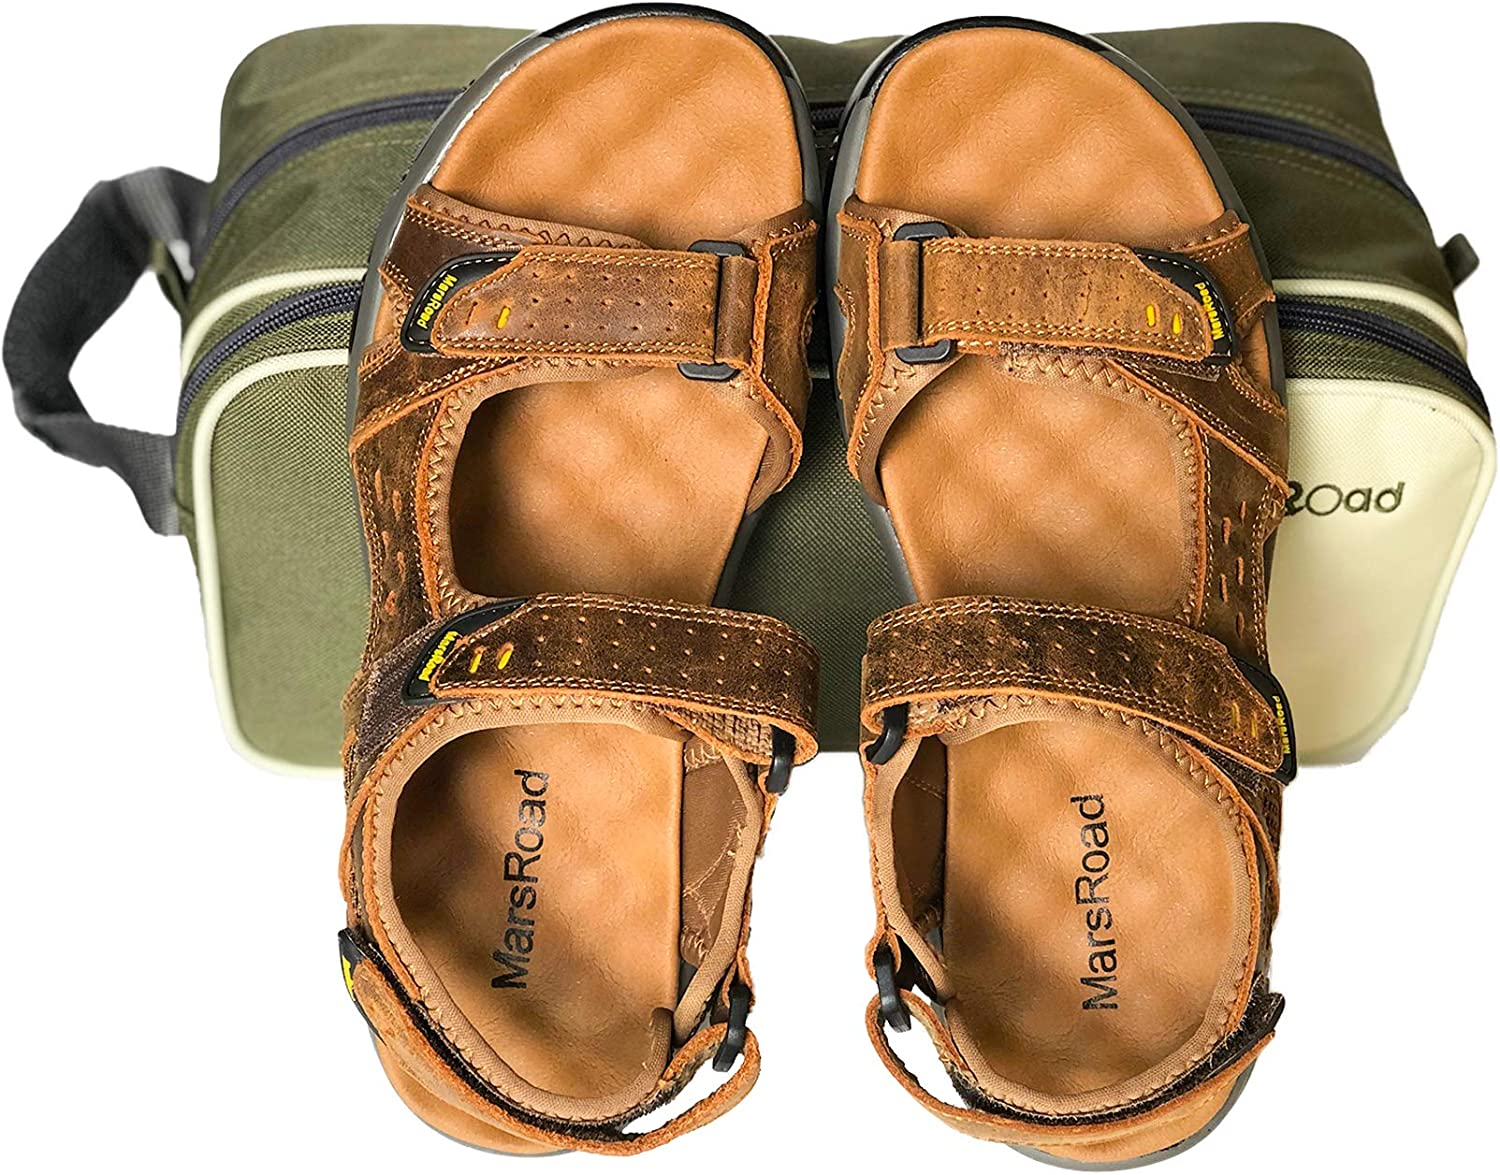 MarsRoad Mens Sandals Leather Outdoor Sandals Packed in a Large Capacity Toiletry Bag